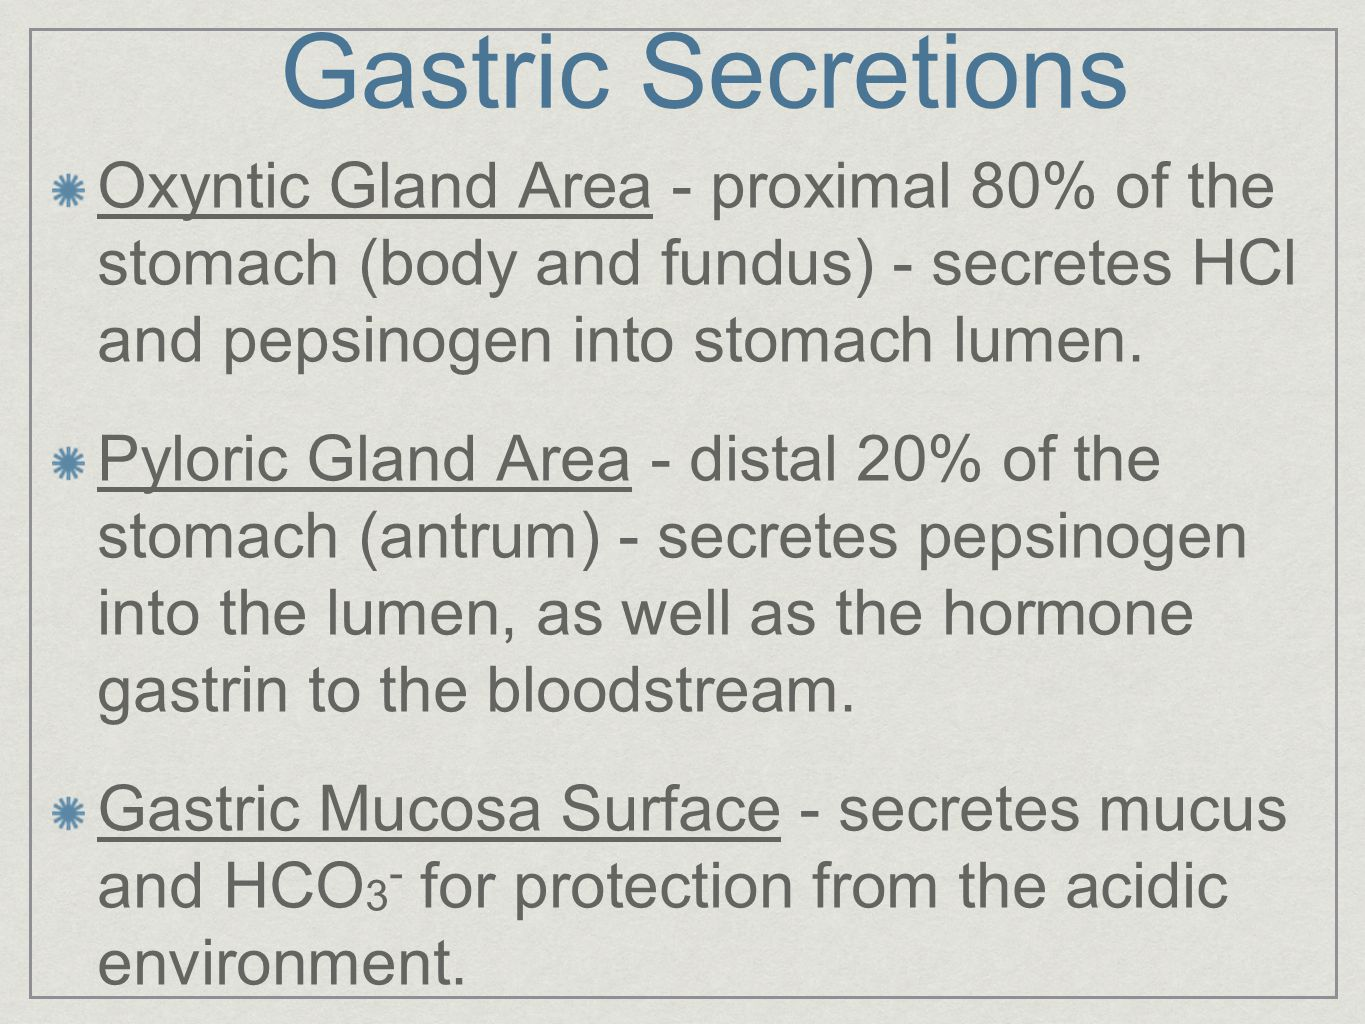 Gastric Secretions Oxyntic Gland Area - proximal 80% of the stomach (body and fundus) - secretes HCl and pepsinogen into stomach lumen.